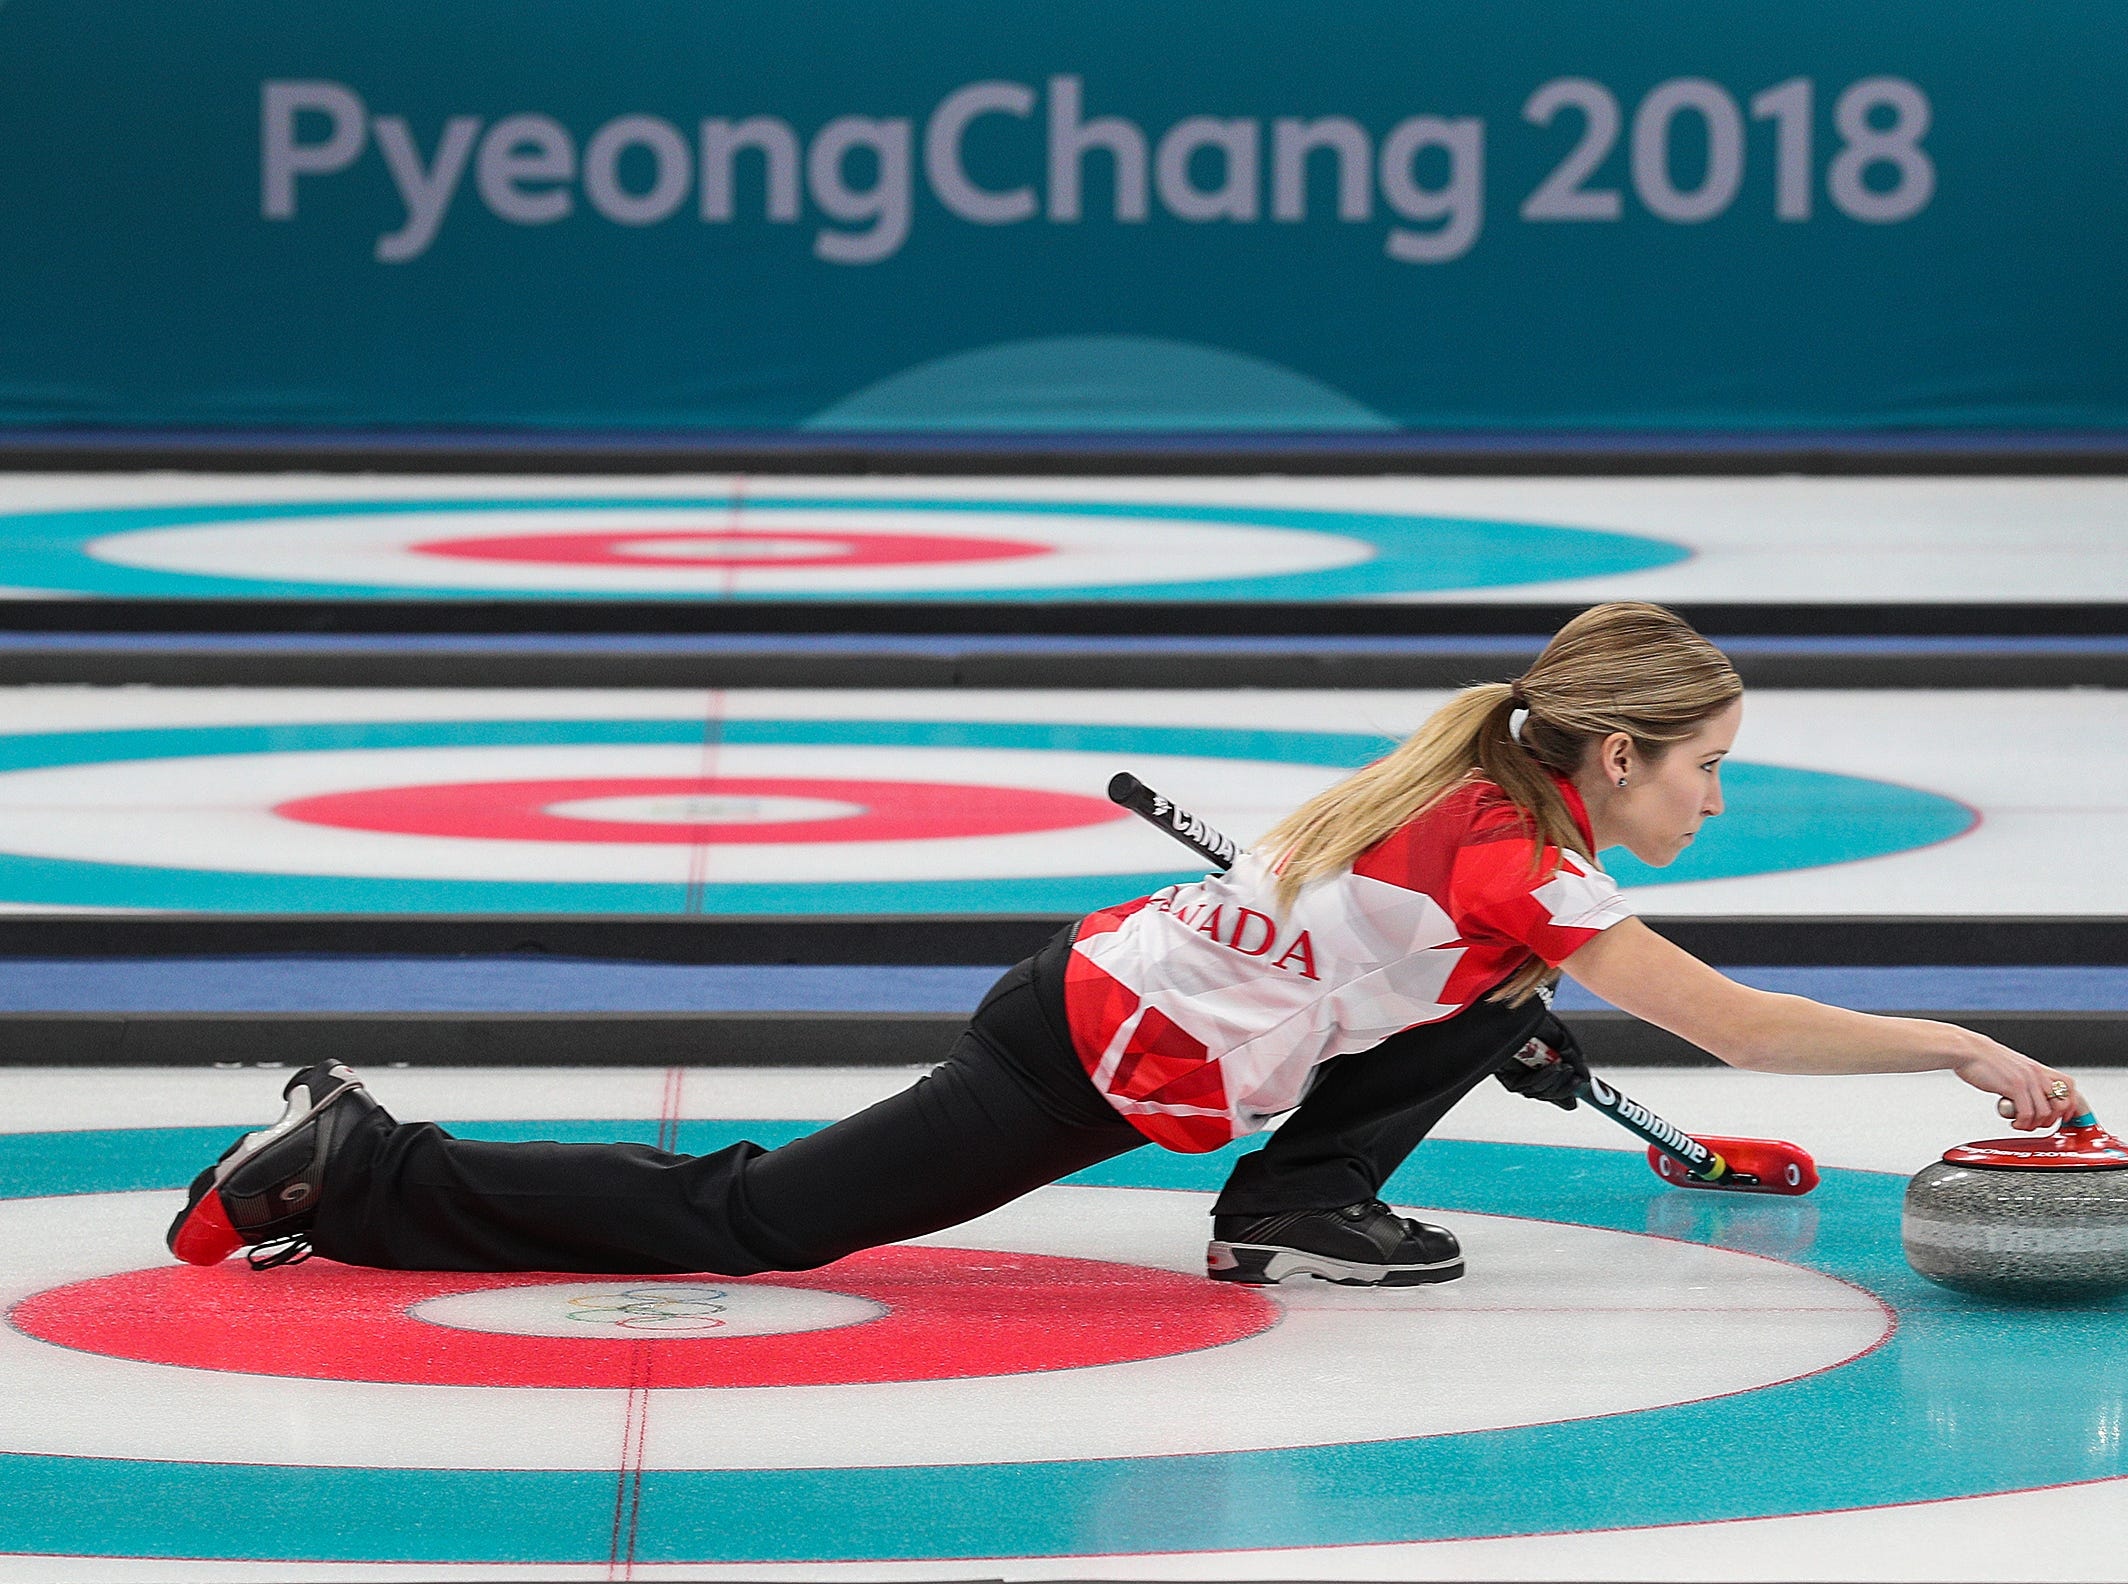 Feb 13, 2018; Gangneung, South Korea; Team Canada's Kaitlyn Lawes and John Morris won the gold medal in mixed doubles by defeating Team Switzerland's Jenny Perret and Martin Rios during the Pyeongchang 2018 Olympic Winter Games at Gangneung Curling Centre. Mandatory Credit: Matt Kryger-USA TODAY Sports